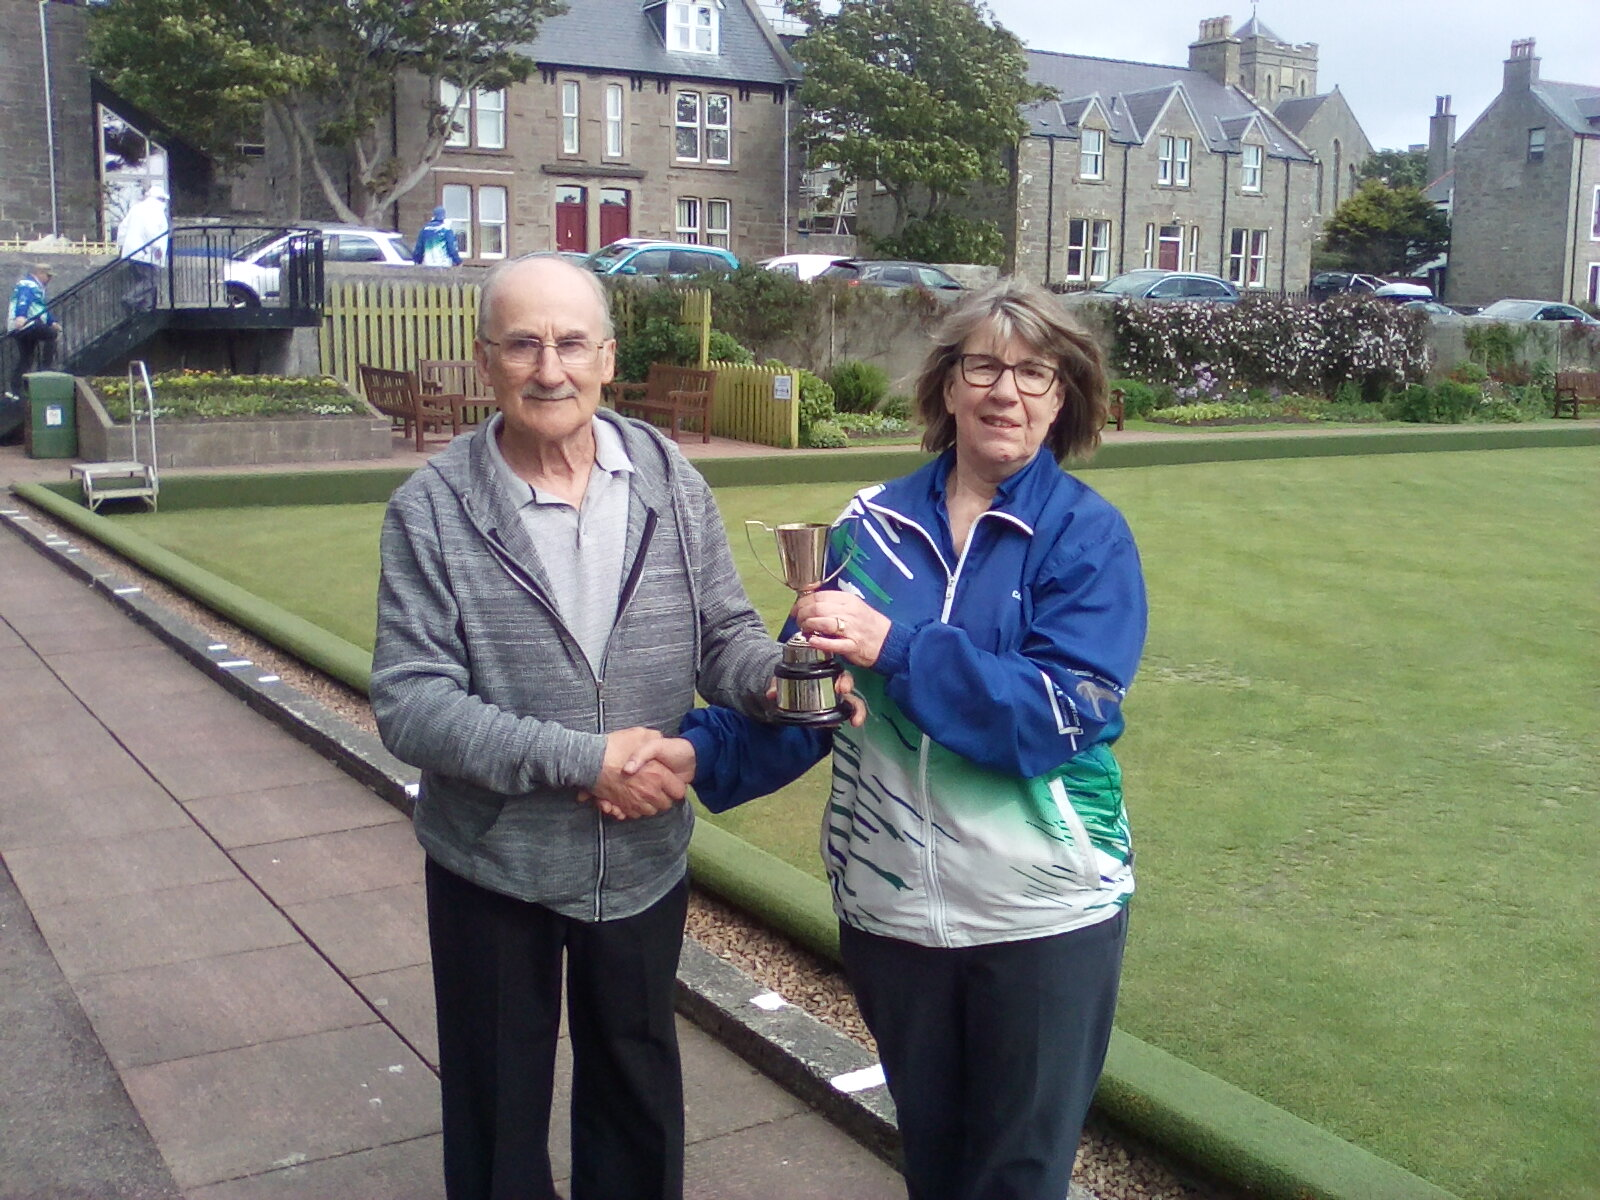 Ian Scott from Morton Lodge presenting the trophy to Caroline Smith, the club vice-President